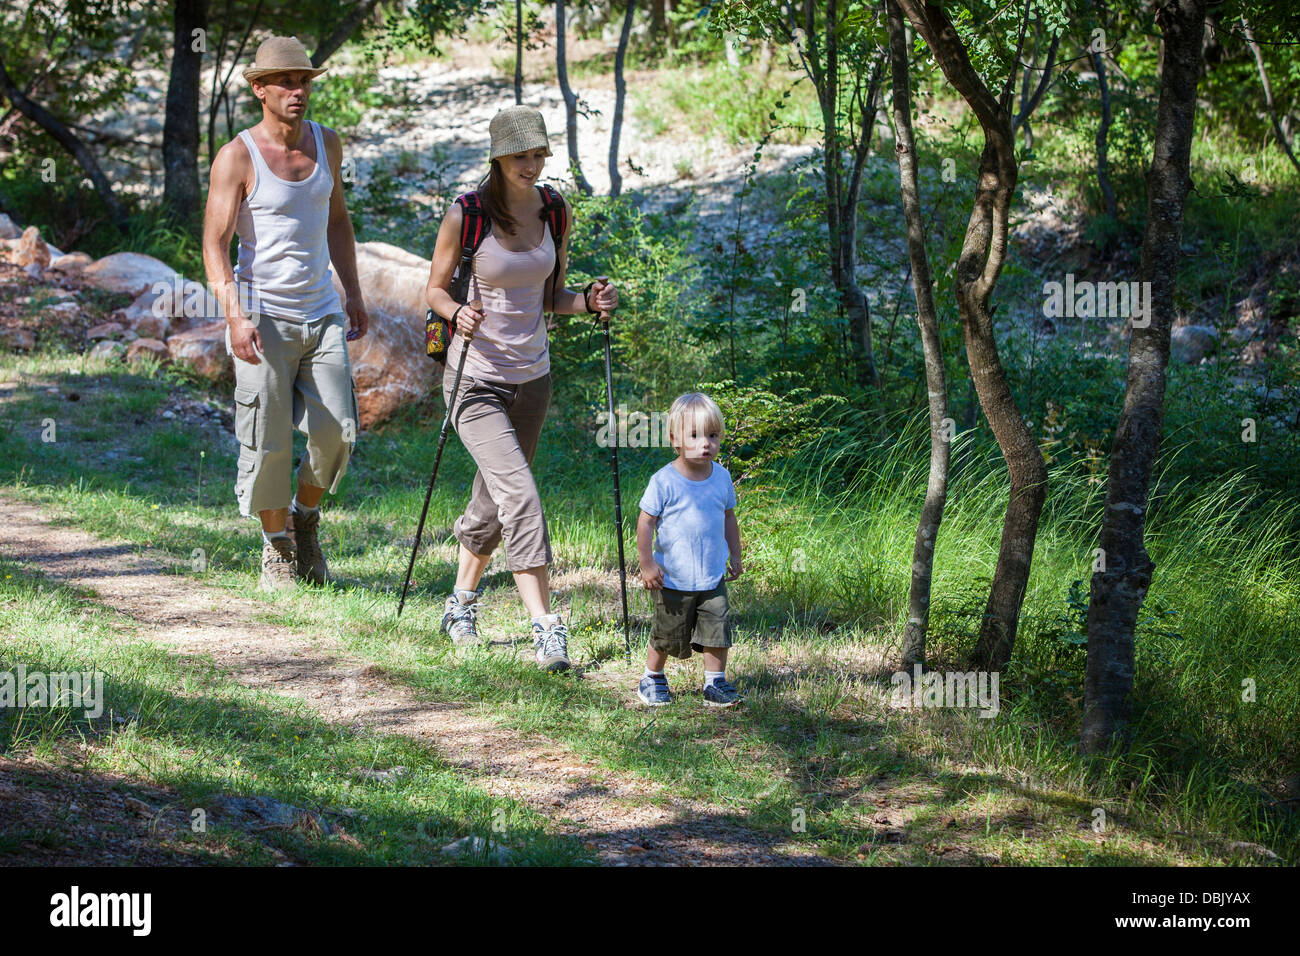 Croatia, Paklenica, Family with one child, hiking - Stock Image